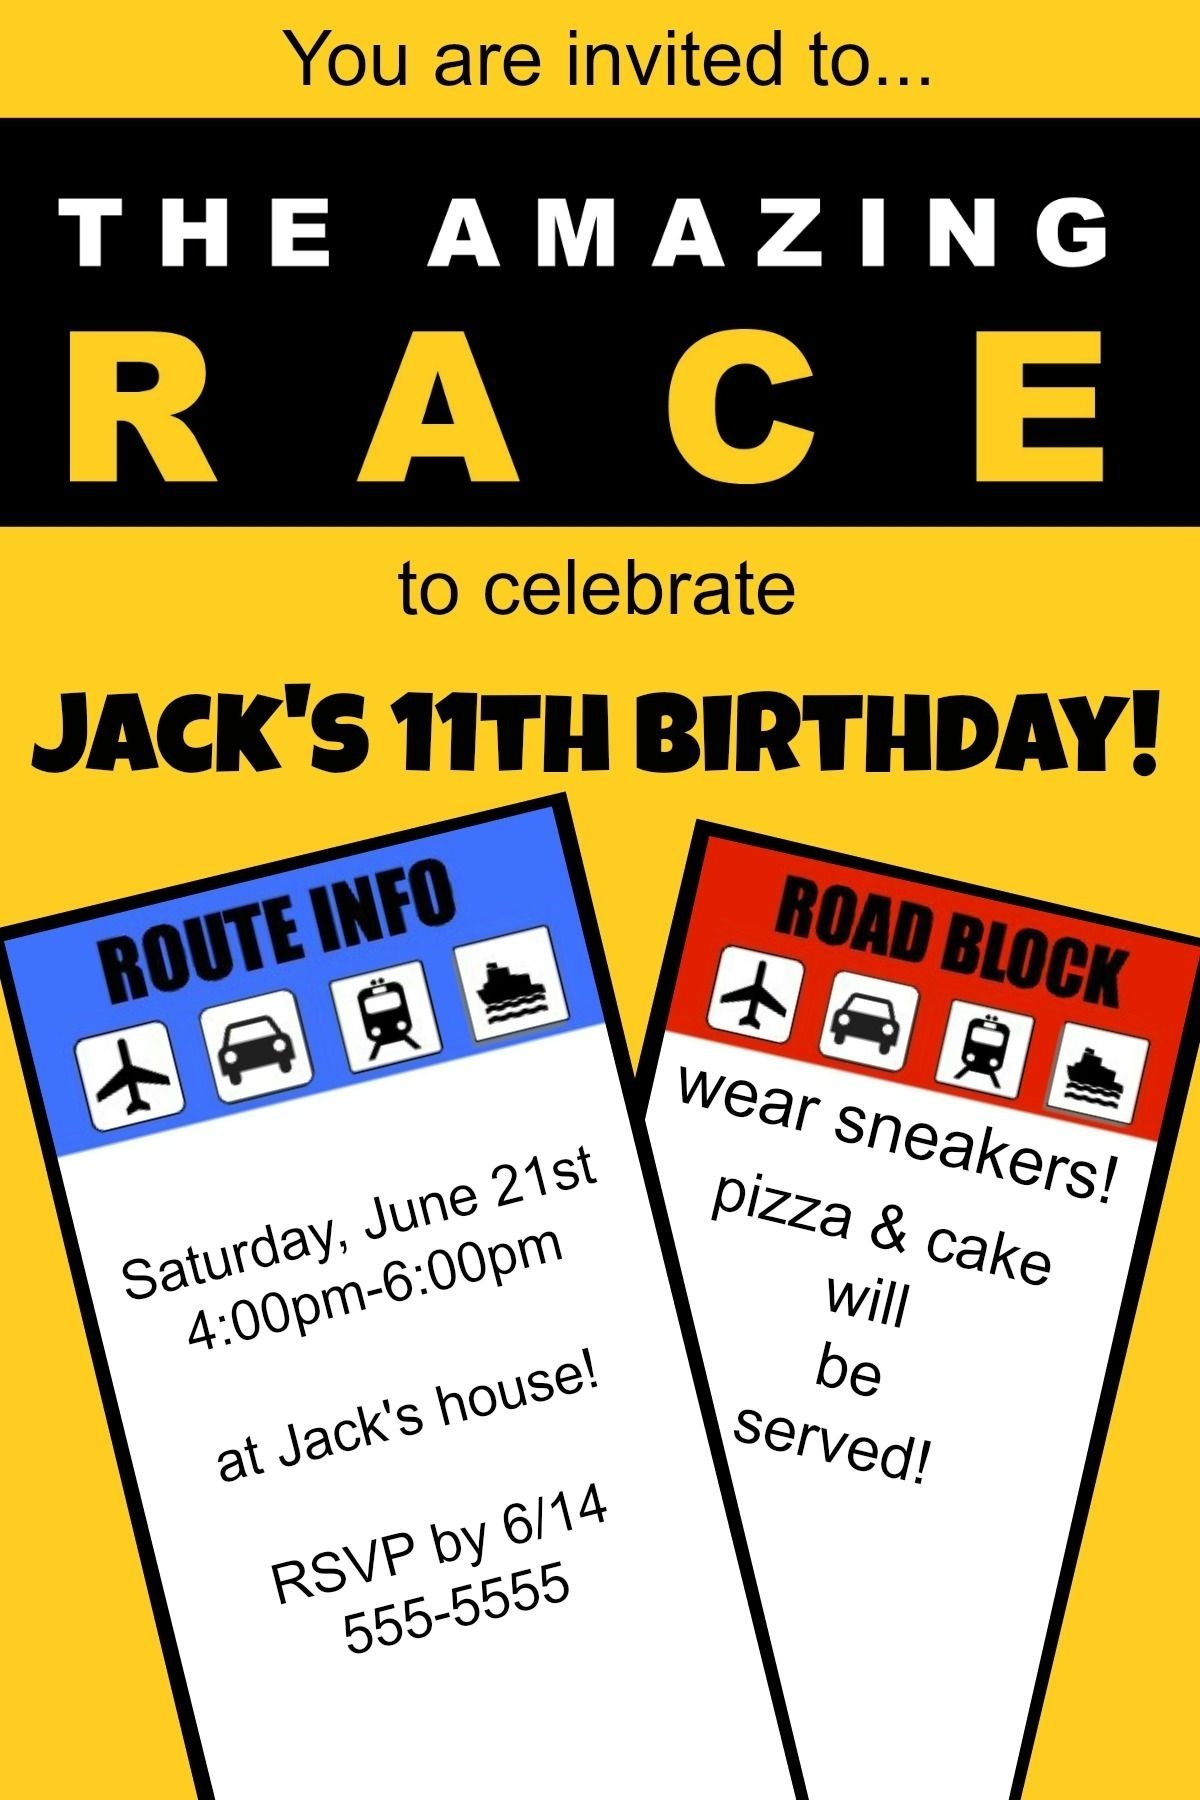 10 Pretty Amazing Race Ideas For Adults how to host an amazing race birthday party at home amazing race 2 2020